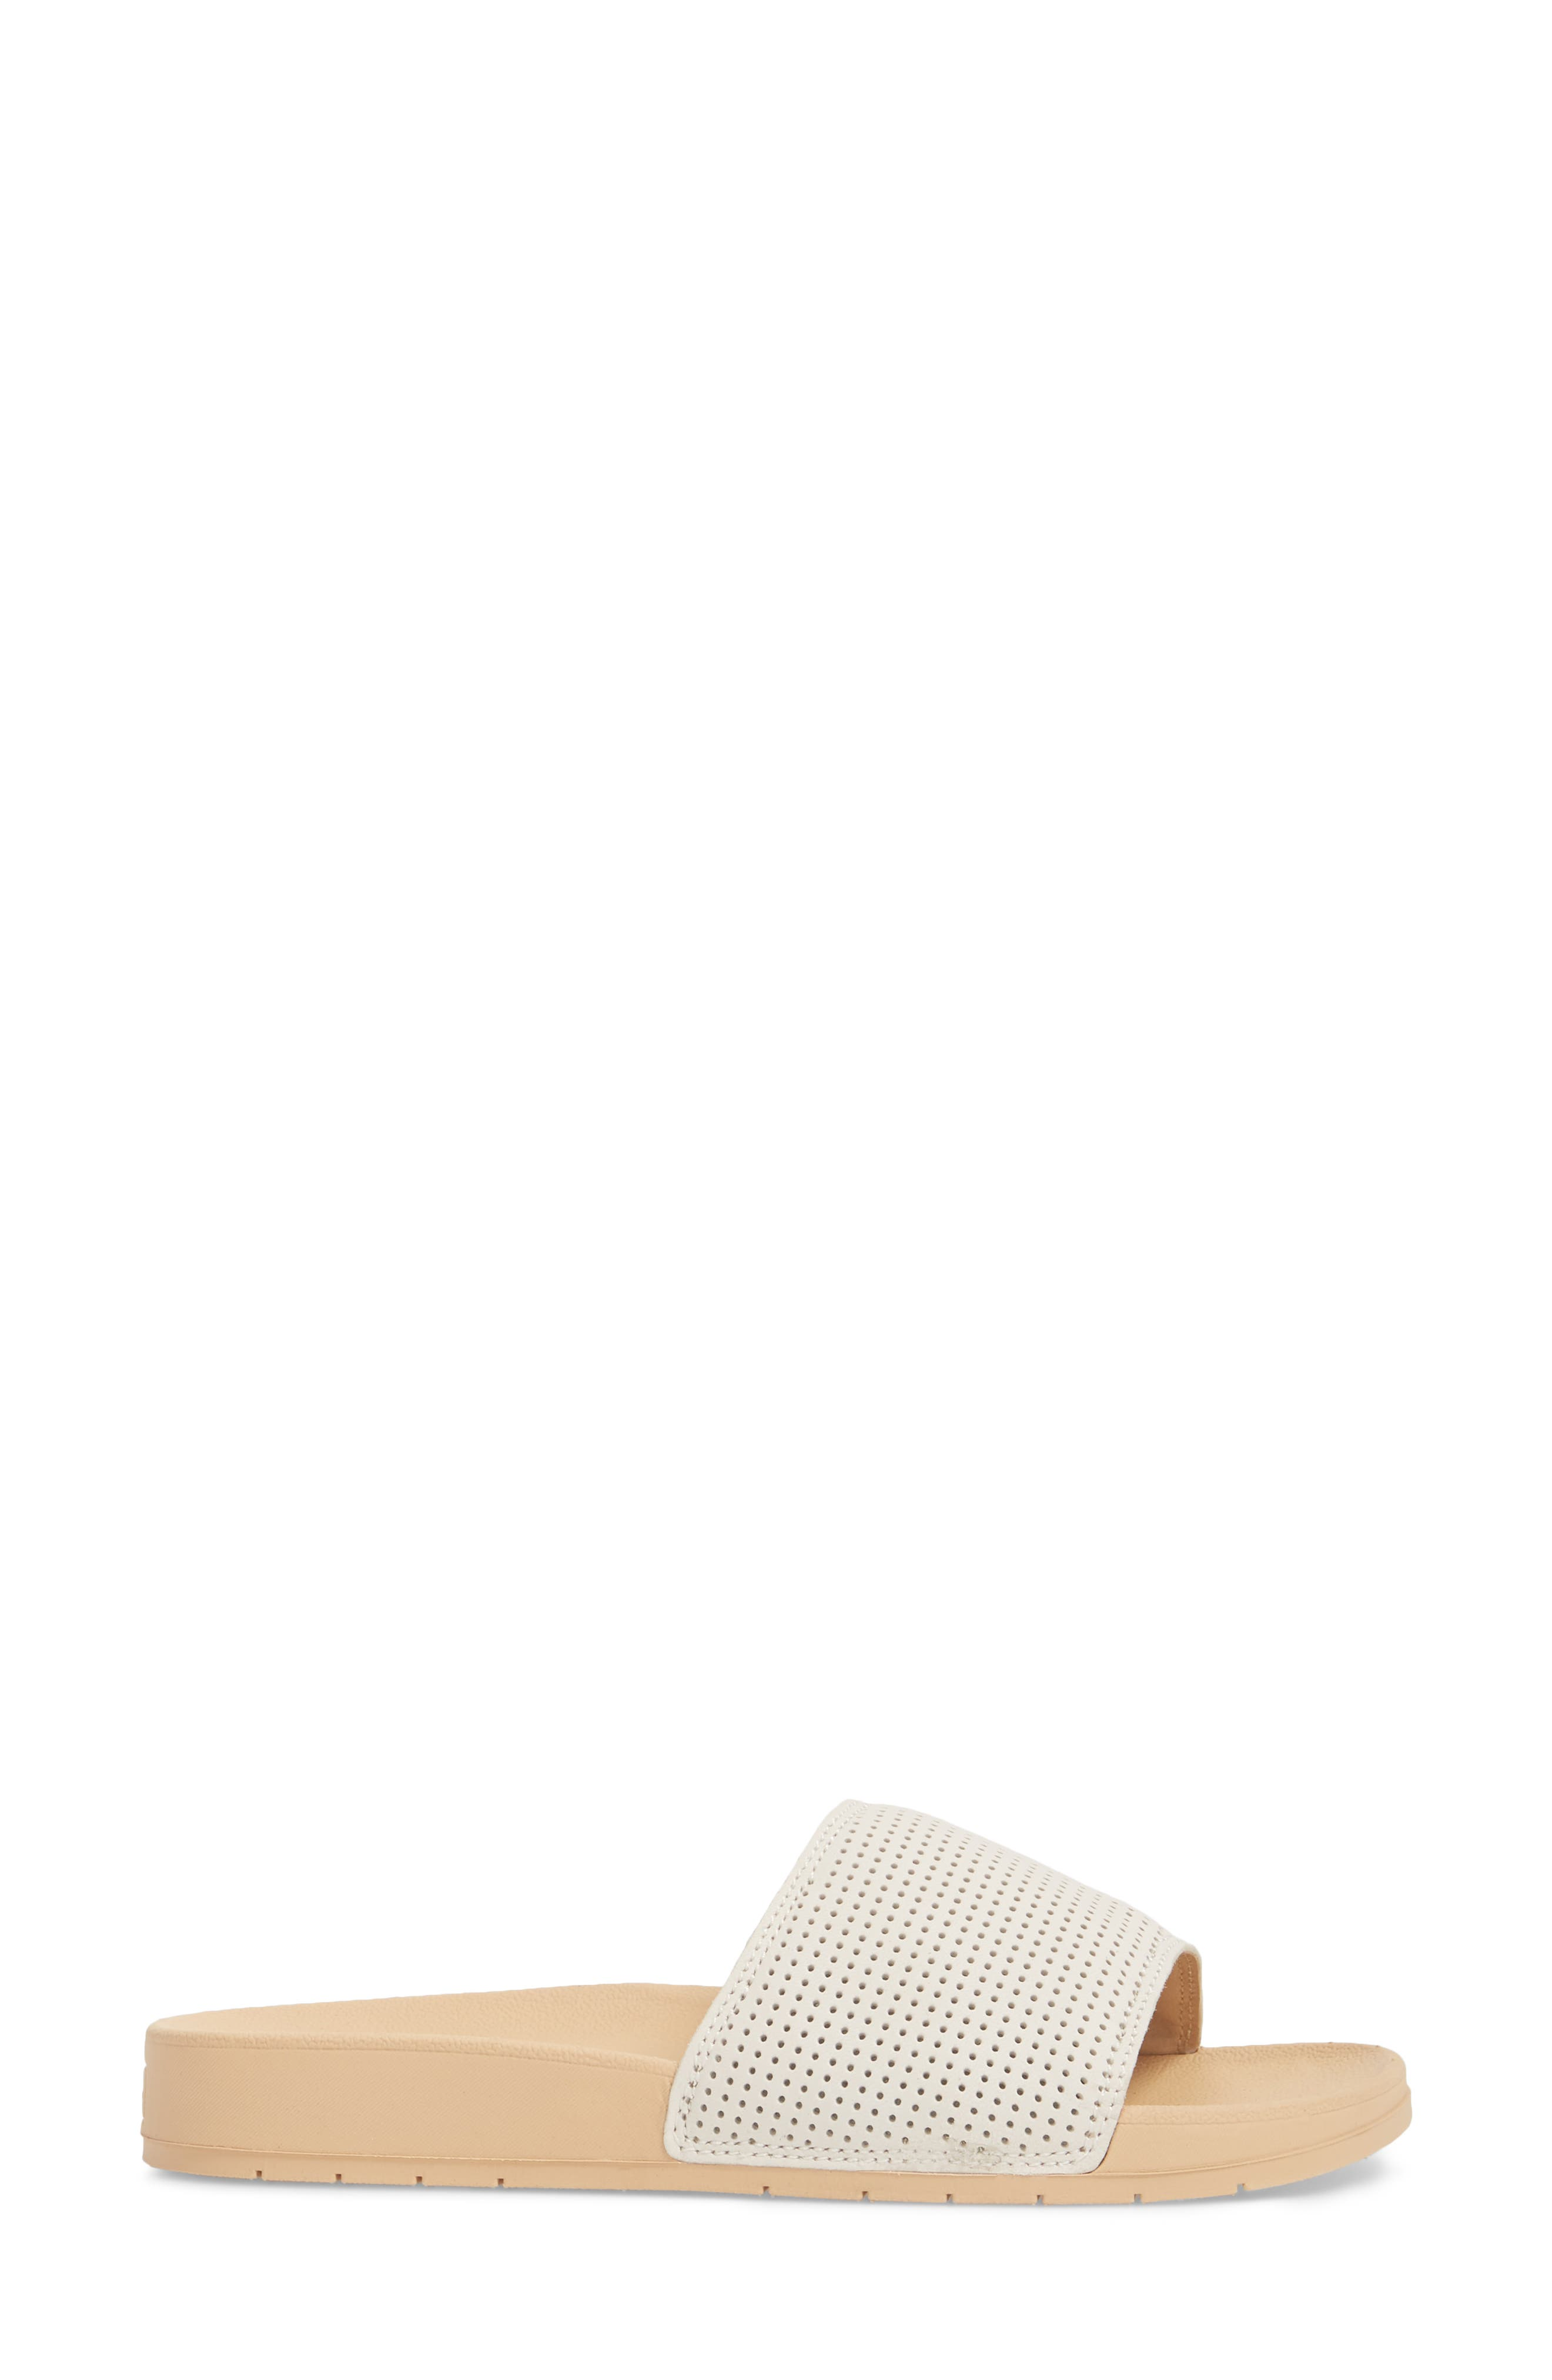 x Designlovefest Bliss Slide Sandal,                             Alternate thumbnail 3, color,                             CREAM/ TAN